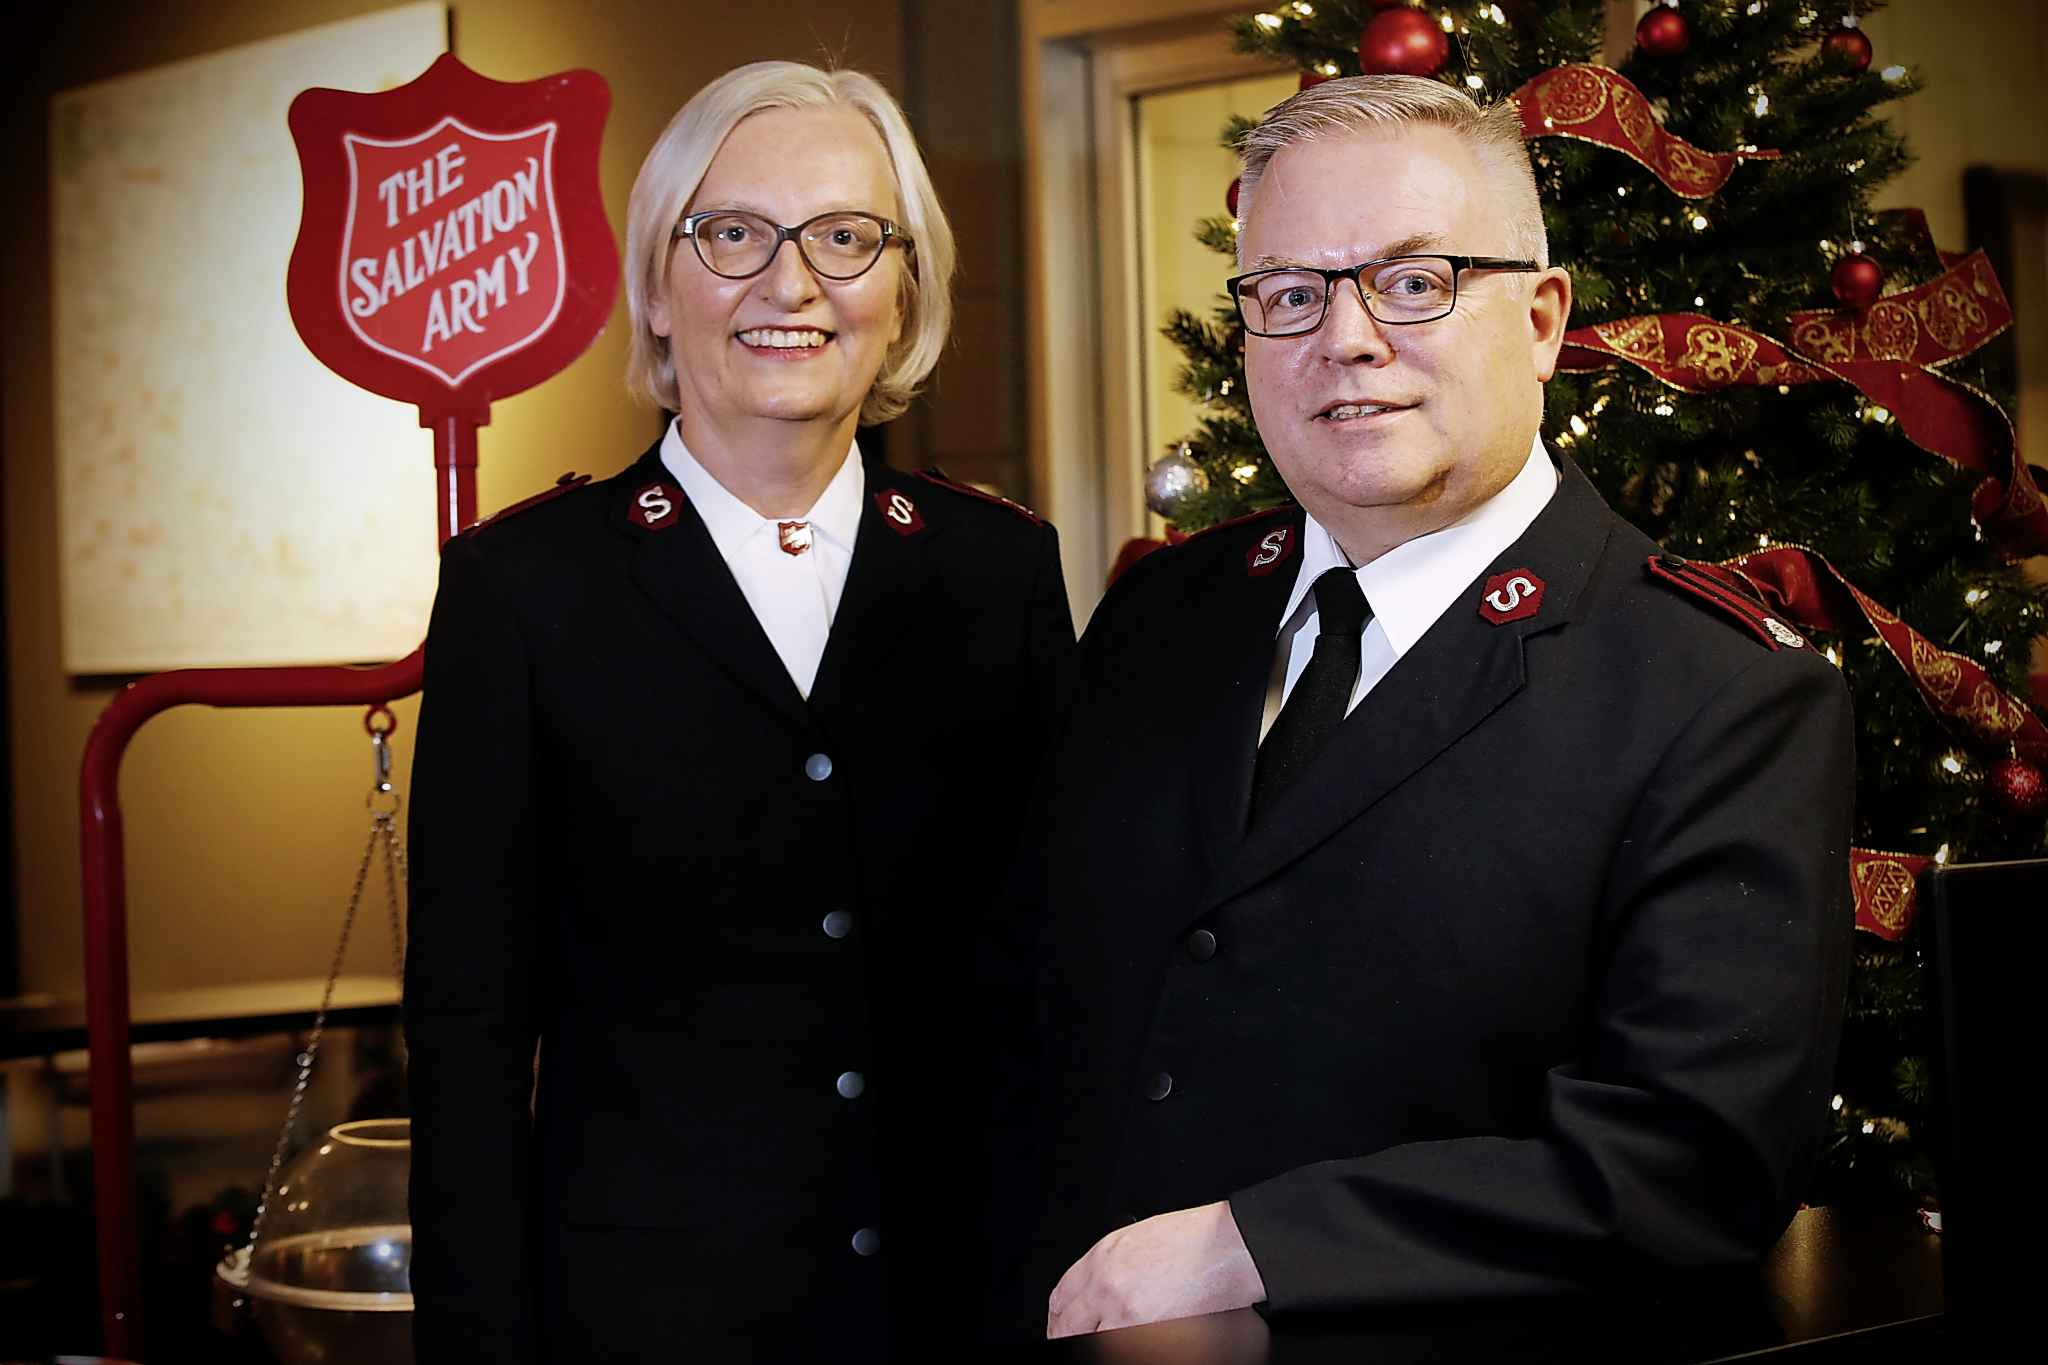 Maj. Brenda Critch and Maj. Shawn Critch humbly downplay a suggestion they are the unsung heroes of the holiday season. (John Woods / Winnipeg Free Press)